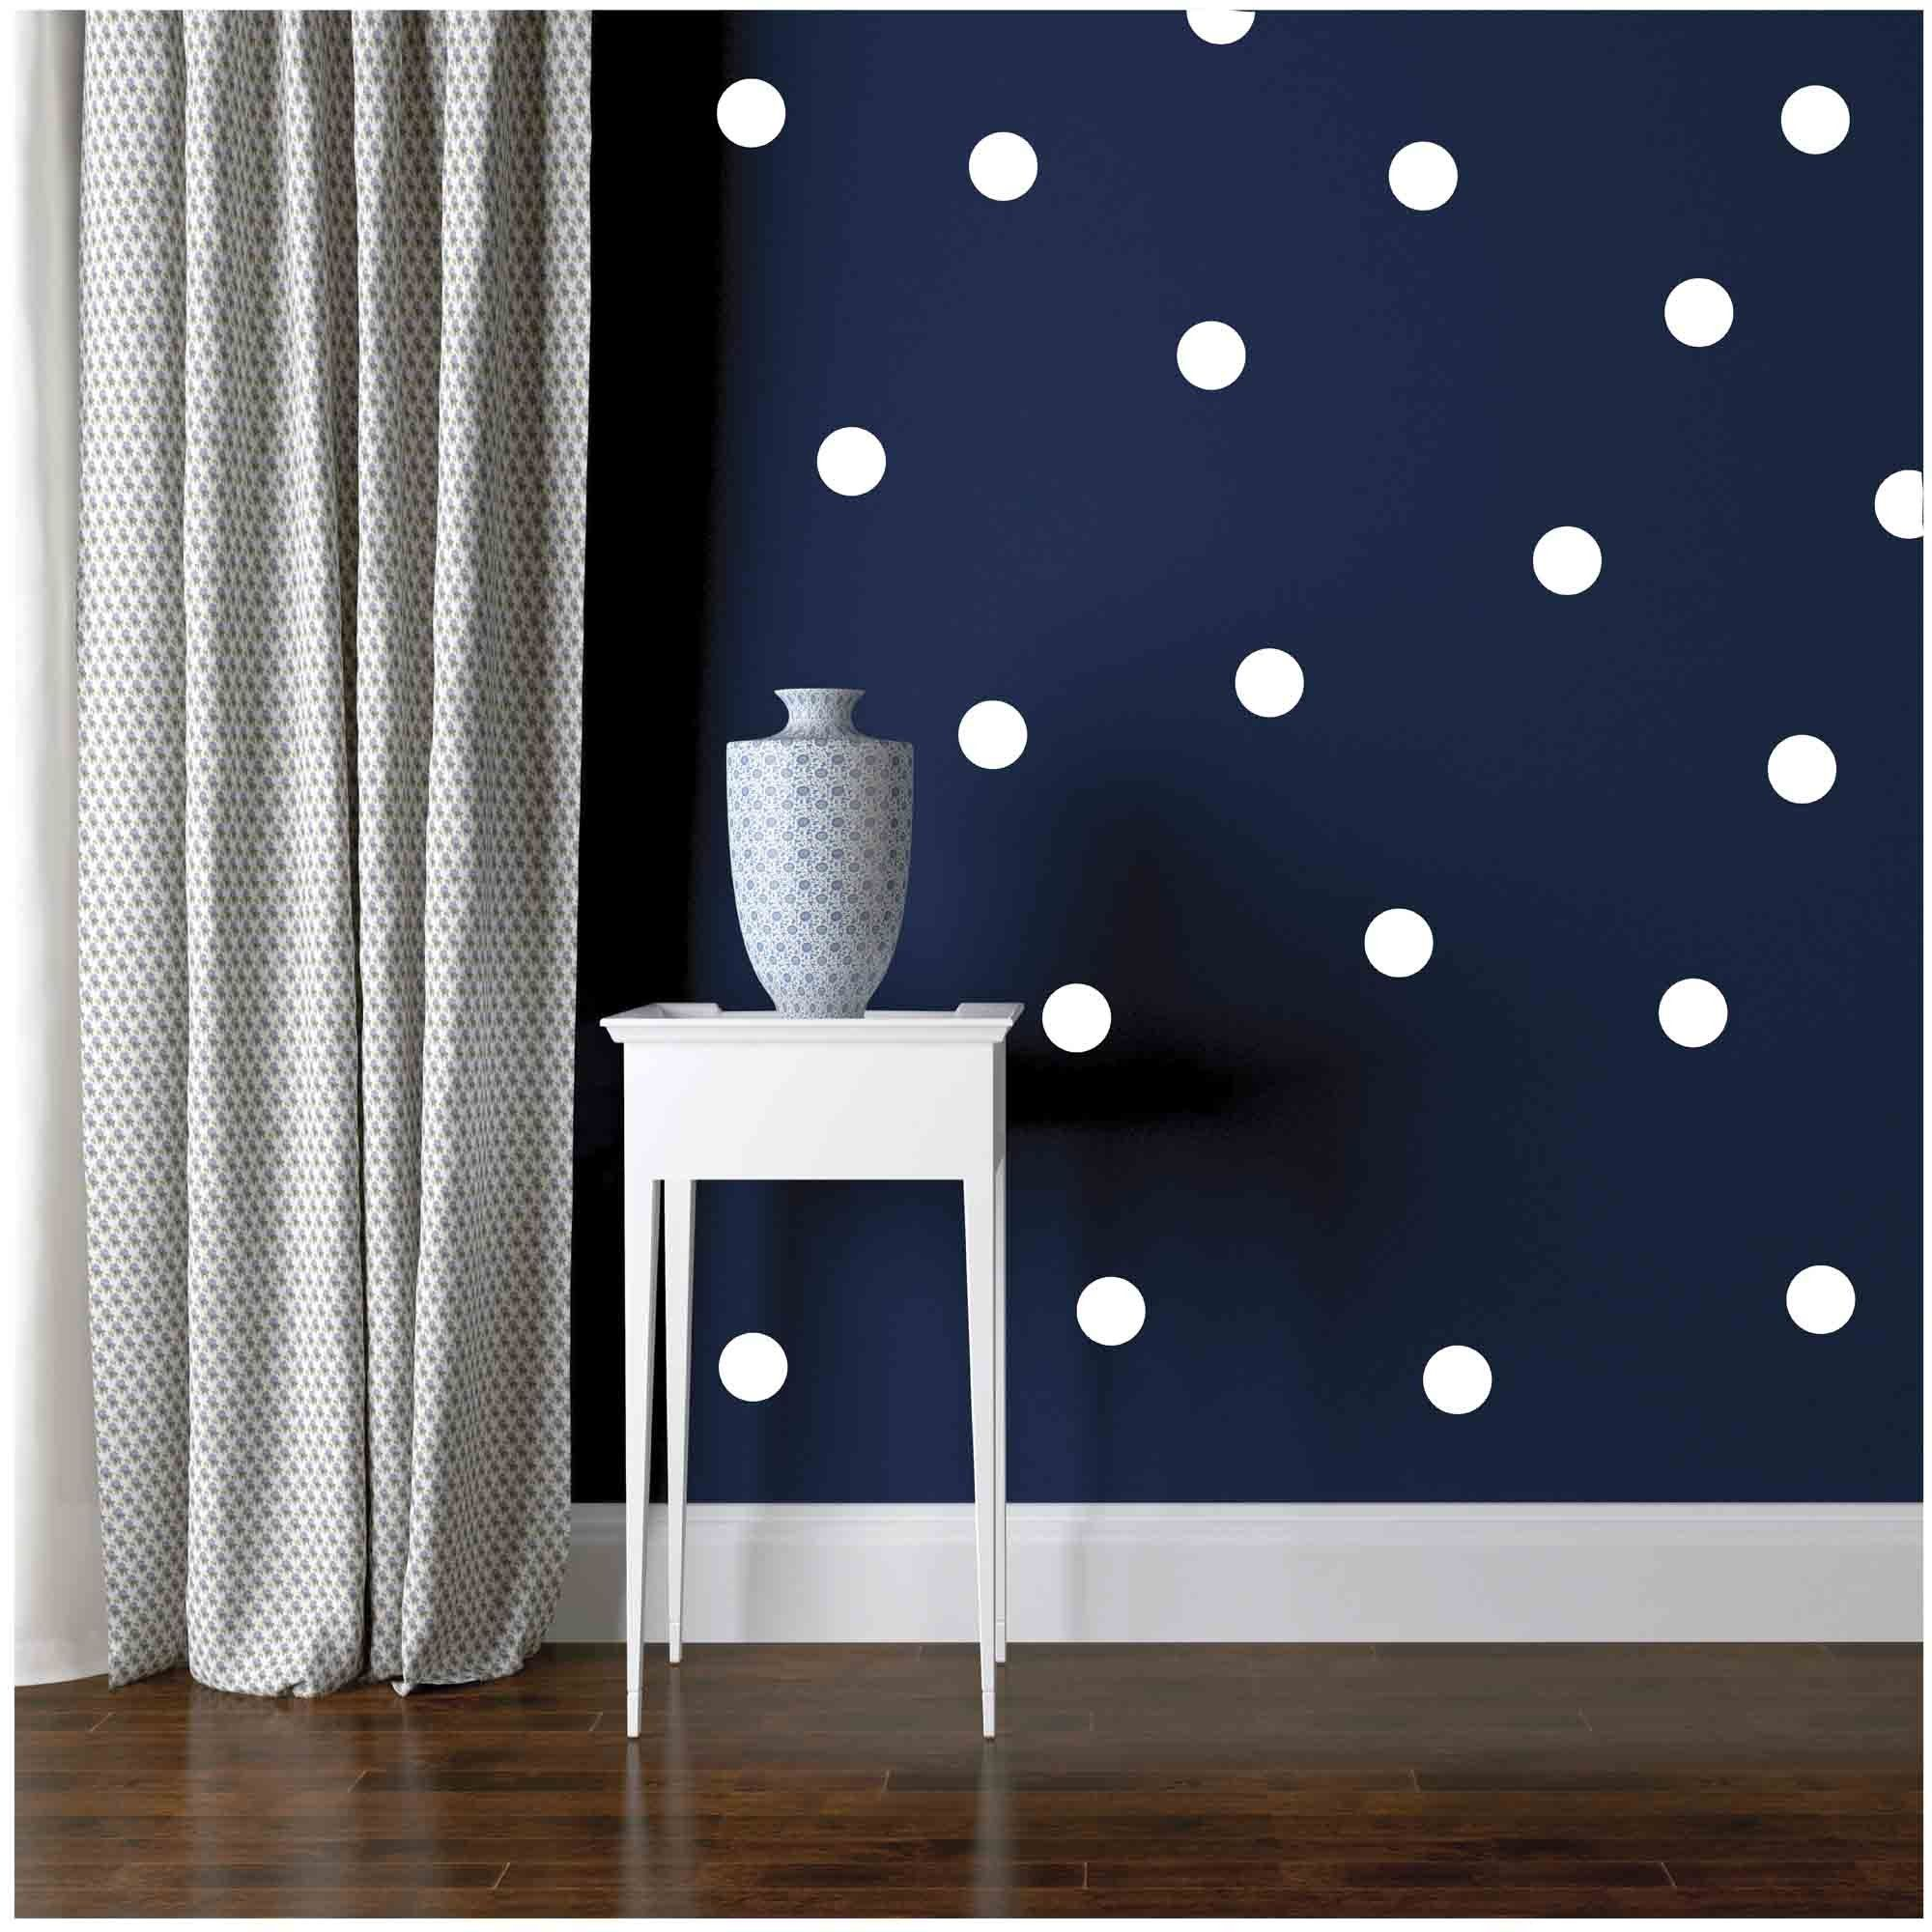 Owl Hills Wall Stickers: Polka Dots, White, 2.5\